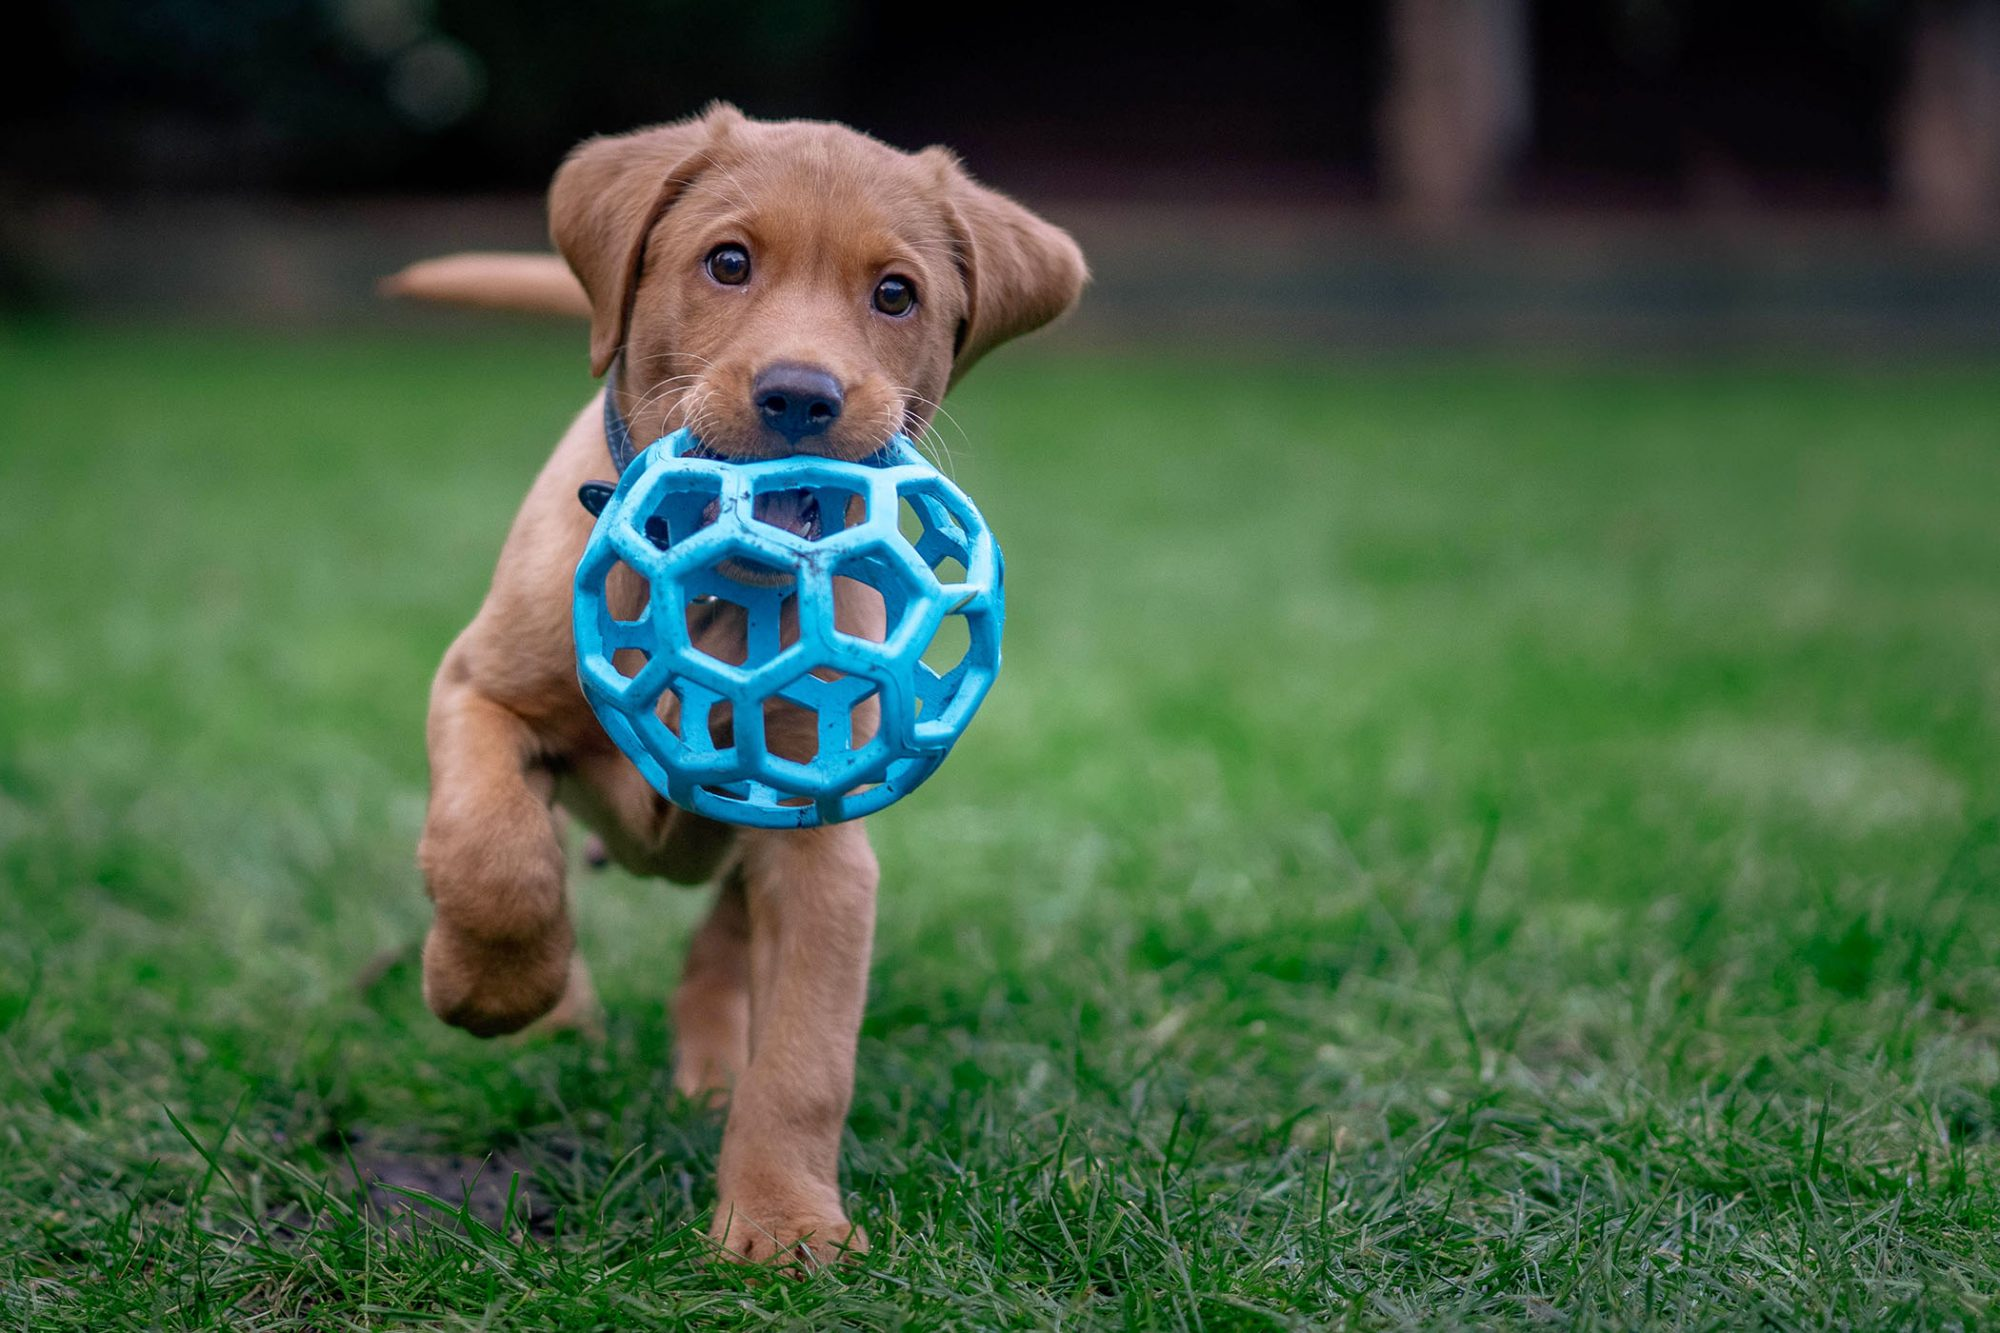 puppy playing with blue plastic ball outside